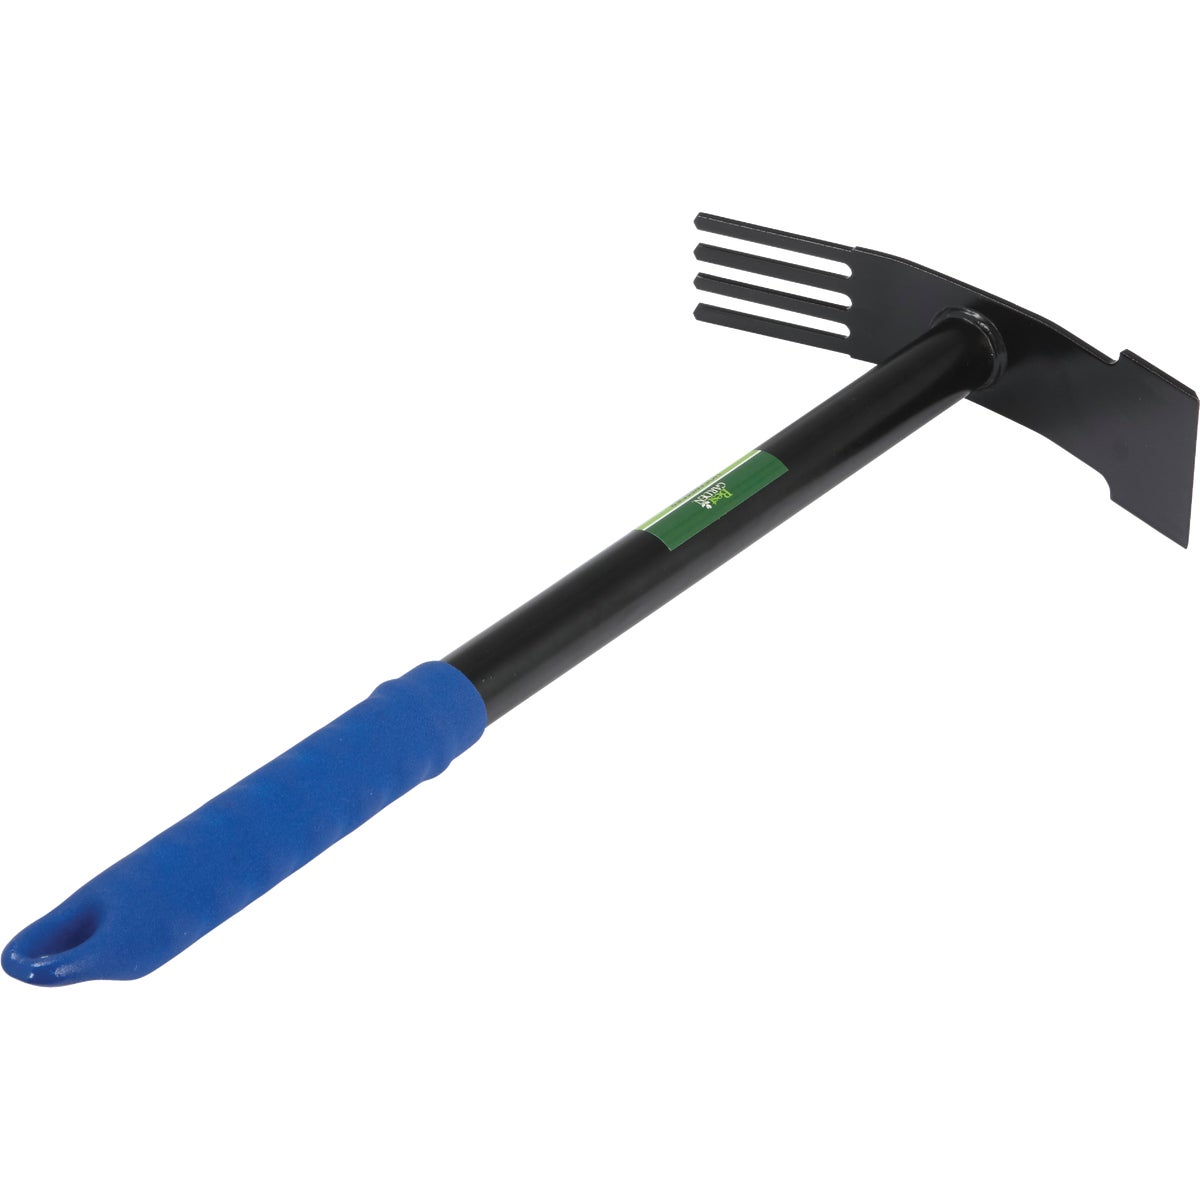 HAND WEEDER/HOE - GT-805H by Do it Best